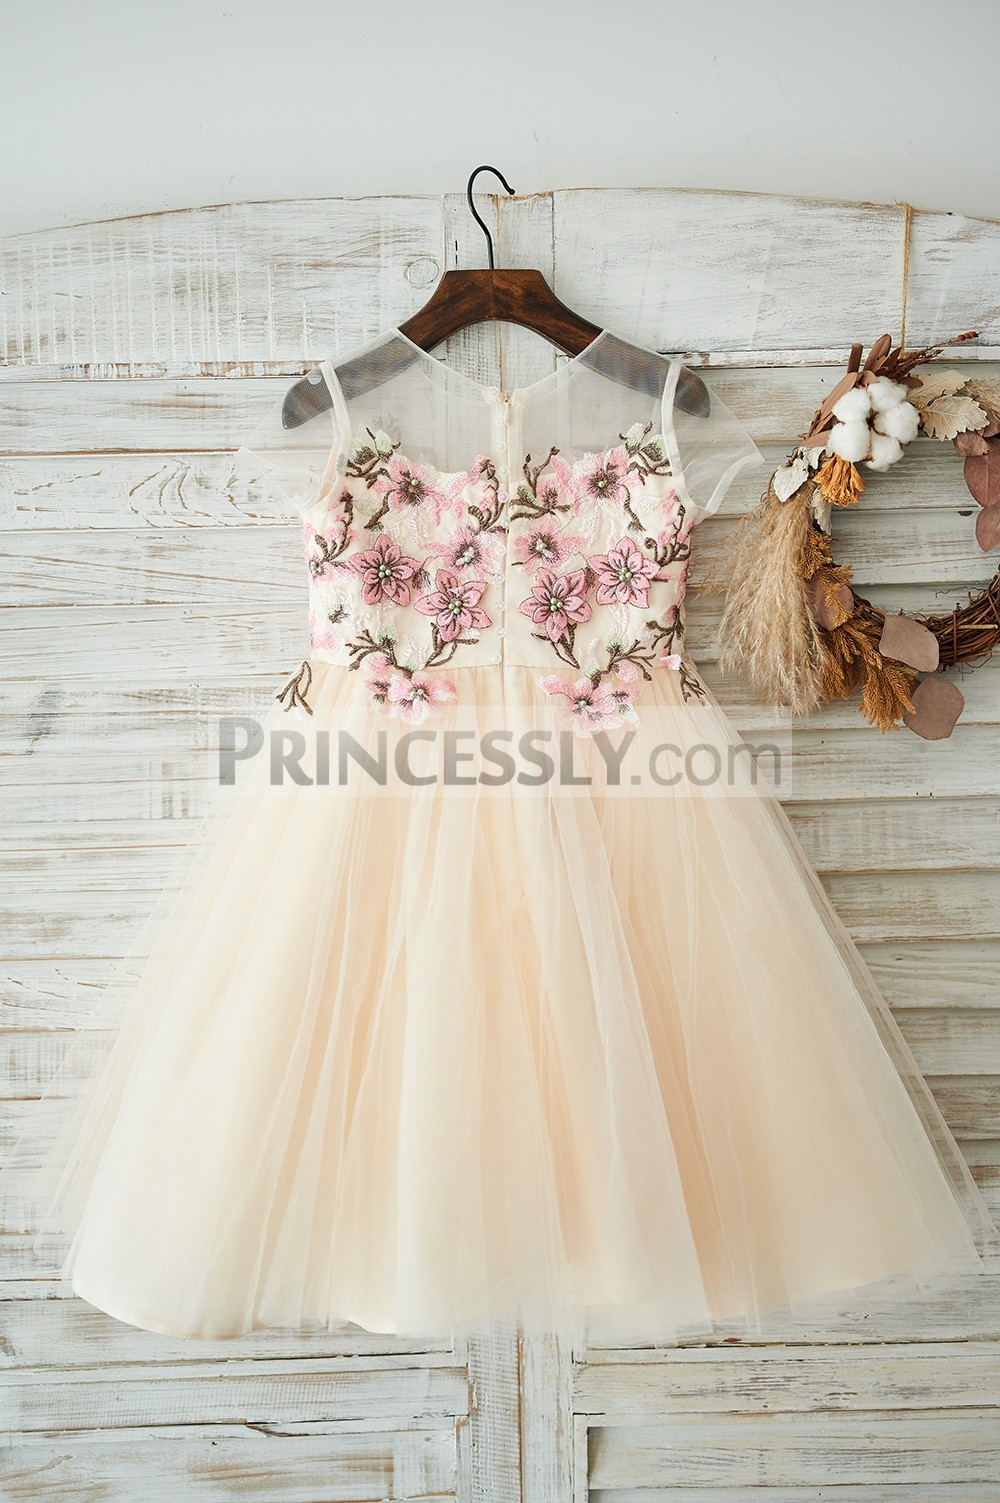 Sheer neck cap sleeves champagne tulle wedding baby girl dress